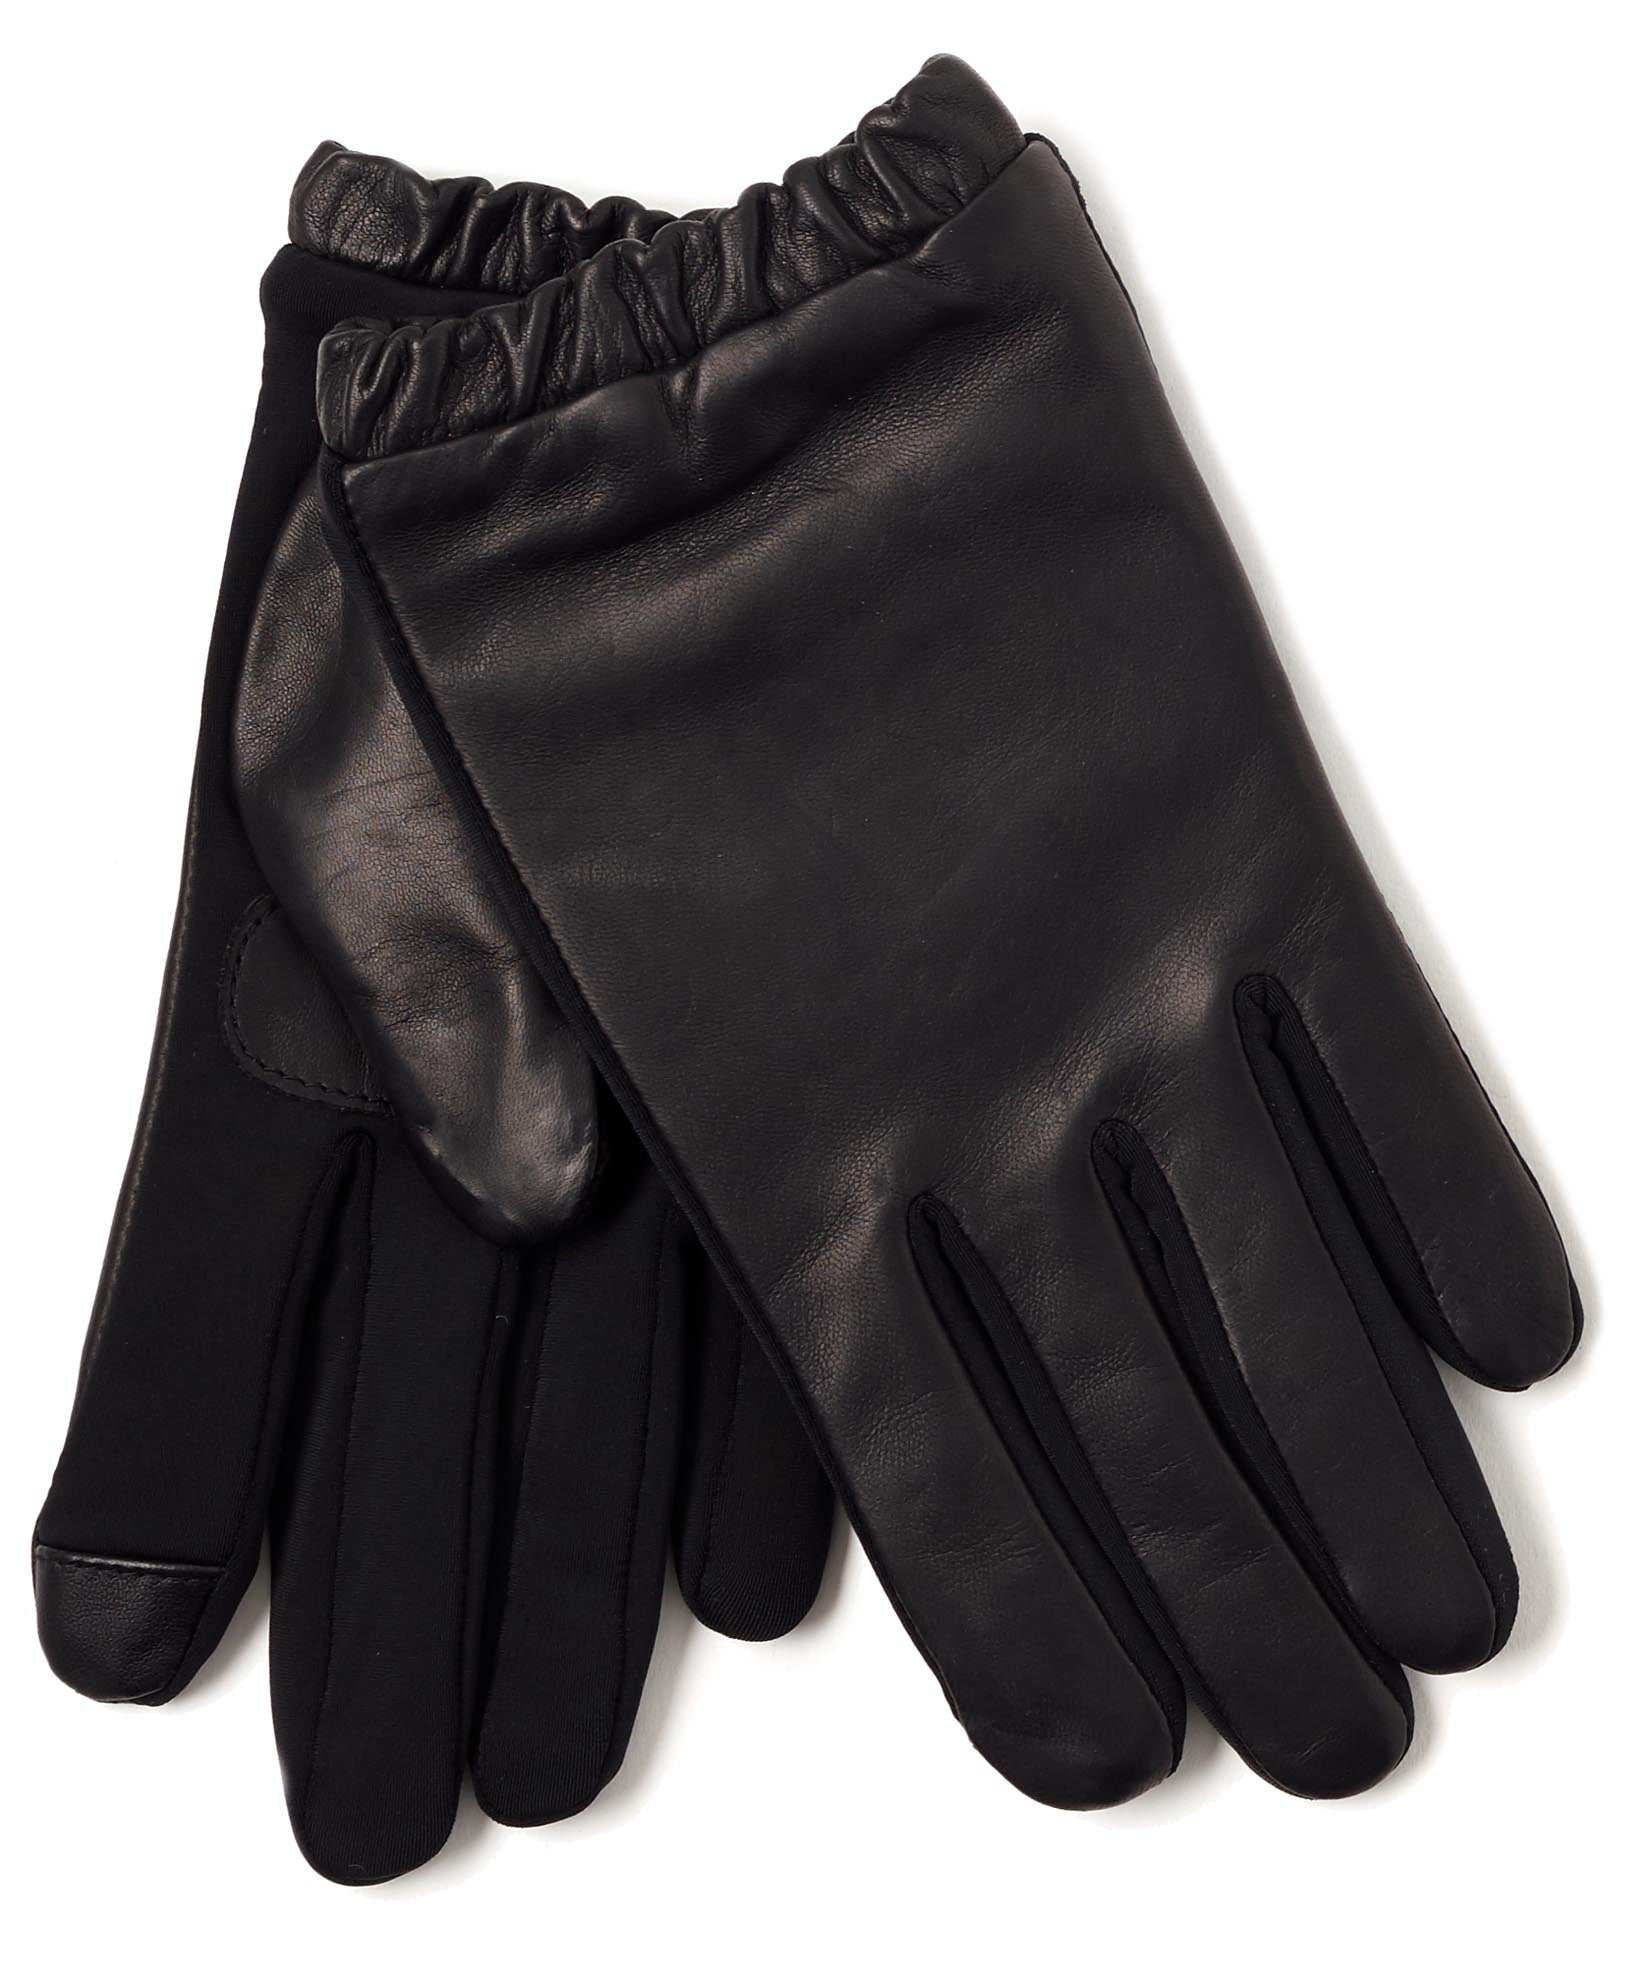 Black - Everyday Superfit Glove